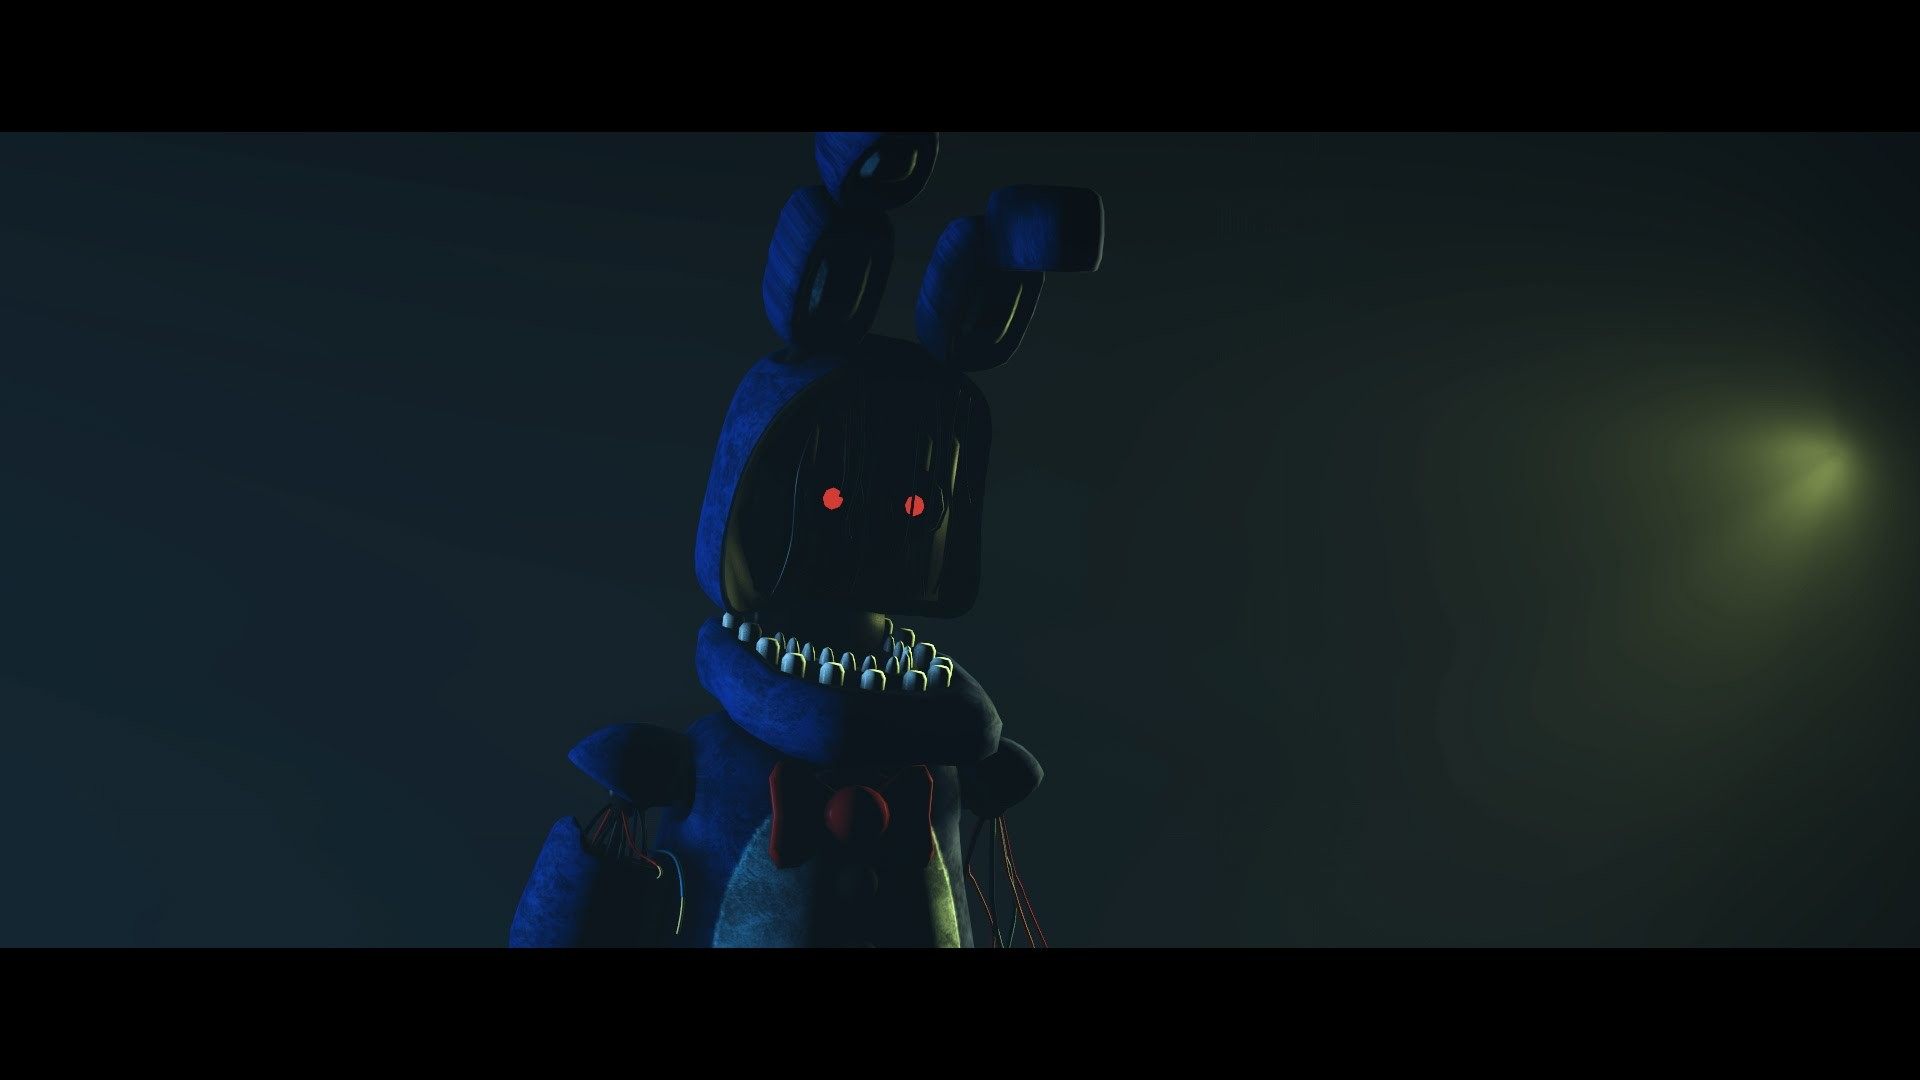 [FNAF SFM] Withered Bonnie Voice (ANIMATED) By David Near! – YouTube